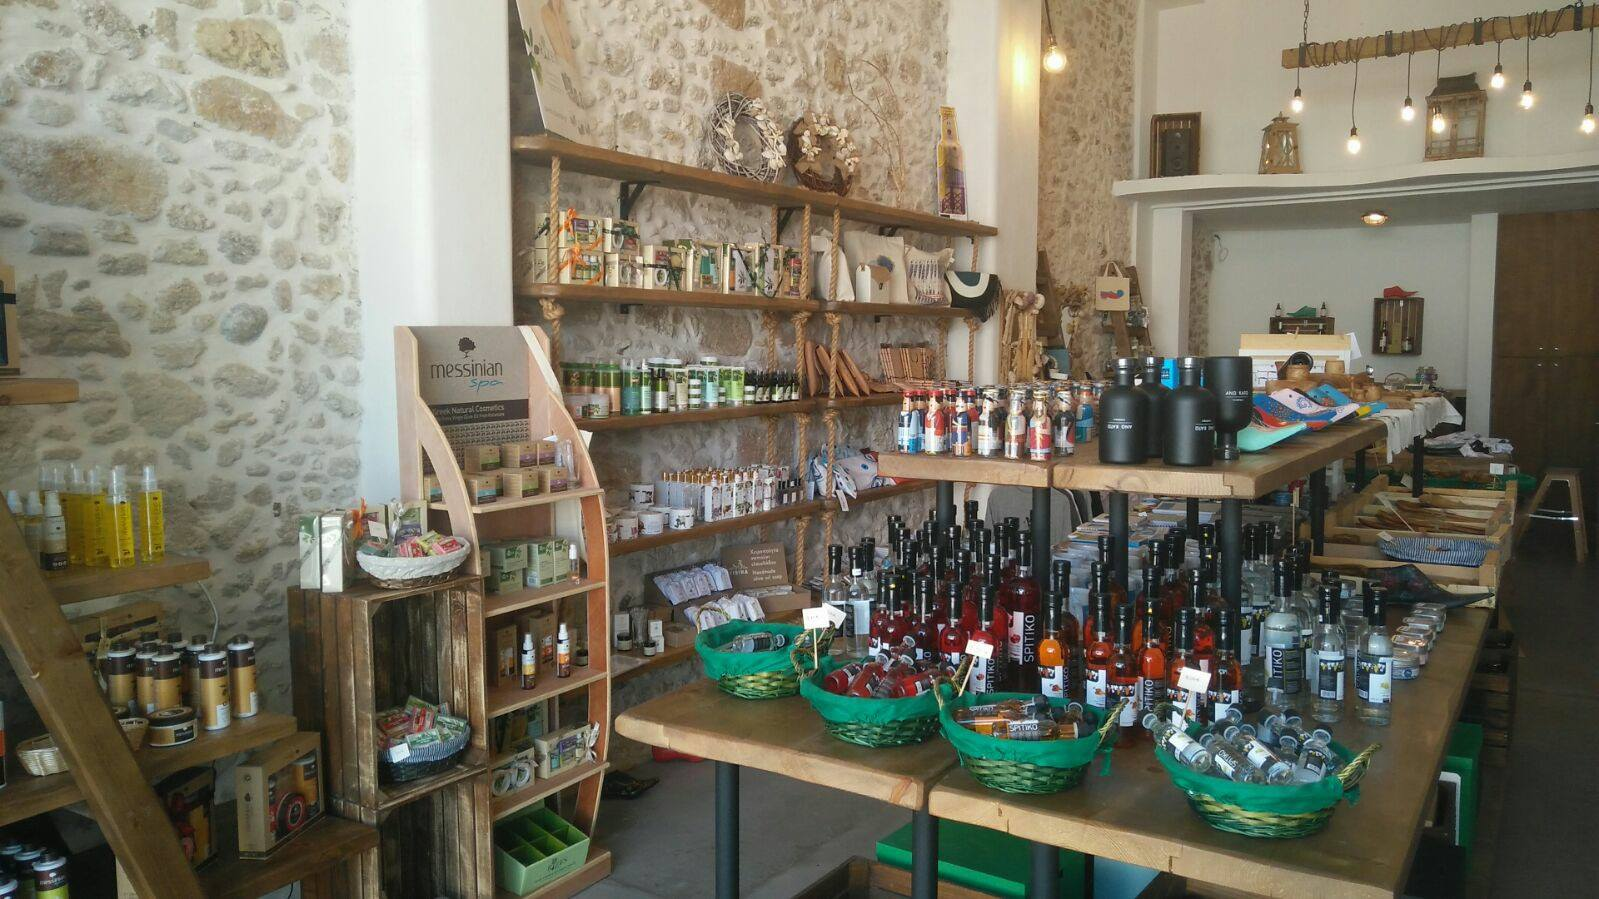 The most beautiful shop in KISSAMOS :  TO KANISKI